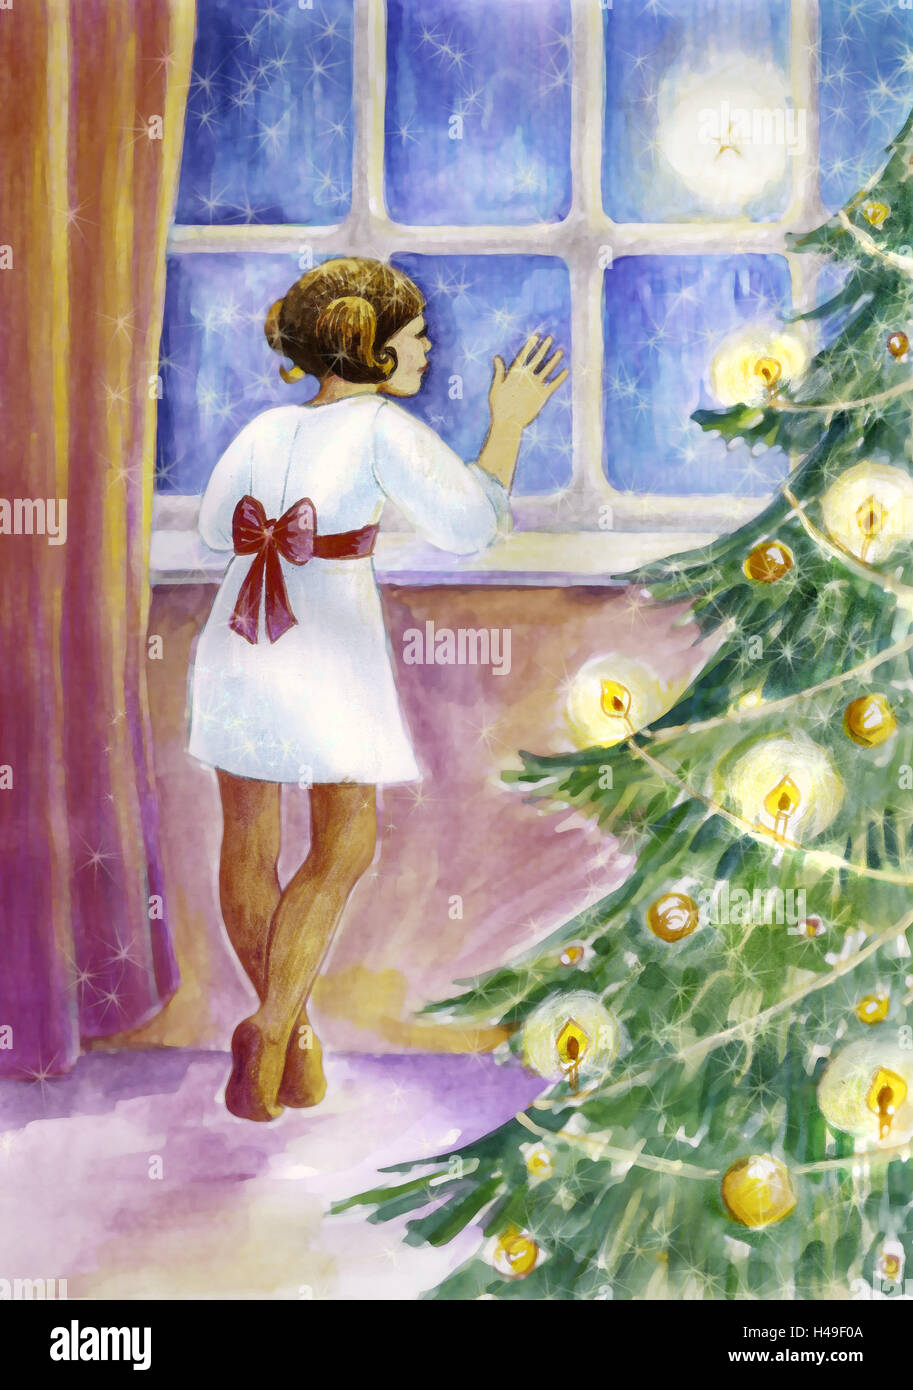 Subscription, Christmas tree, girl, window, look out, wait, illustration, painting, Christmas, for Christmas, child, - Stock Image